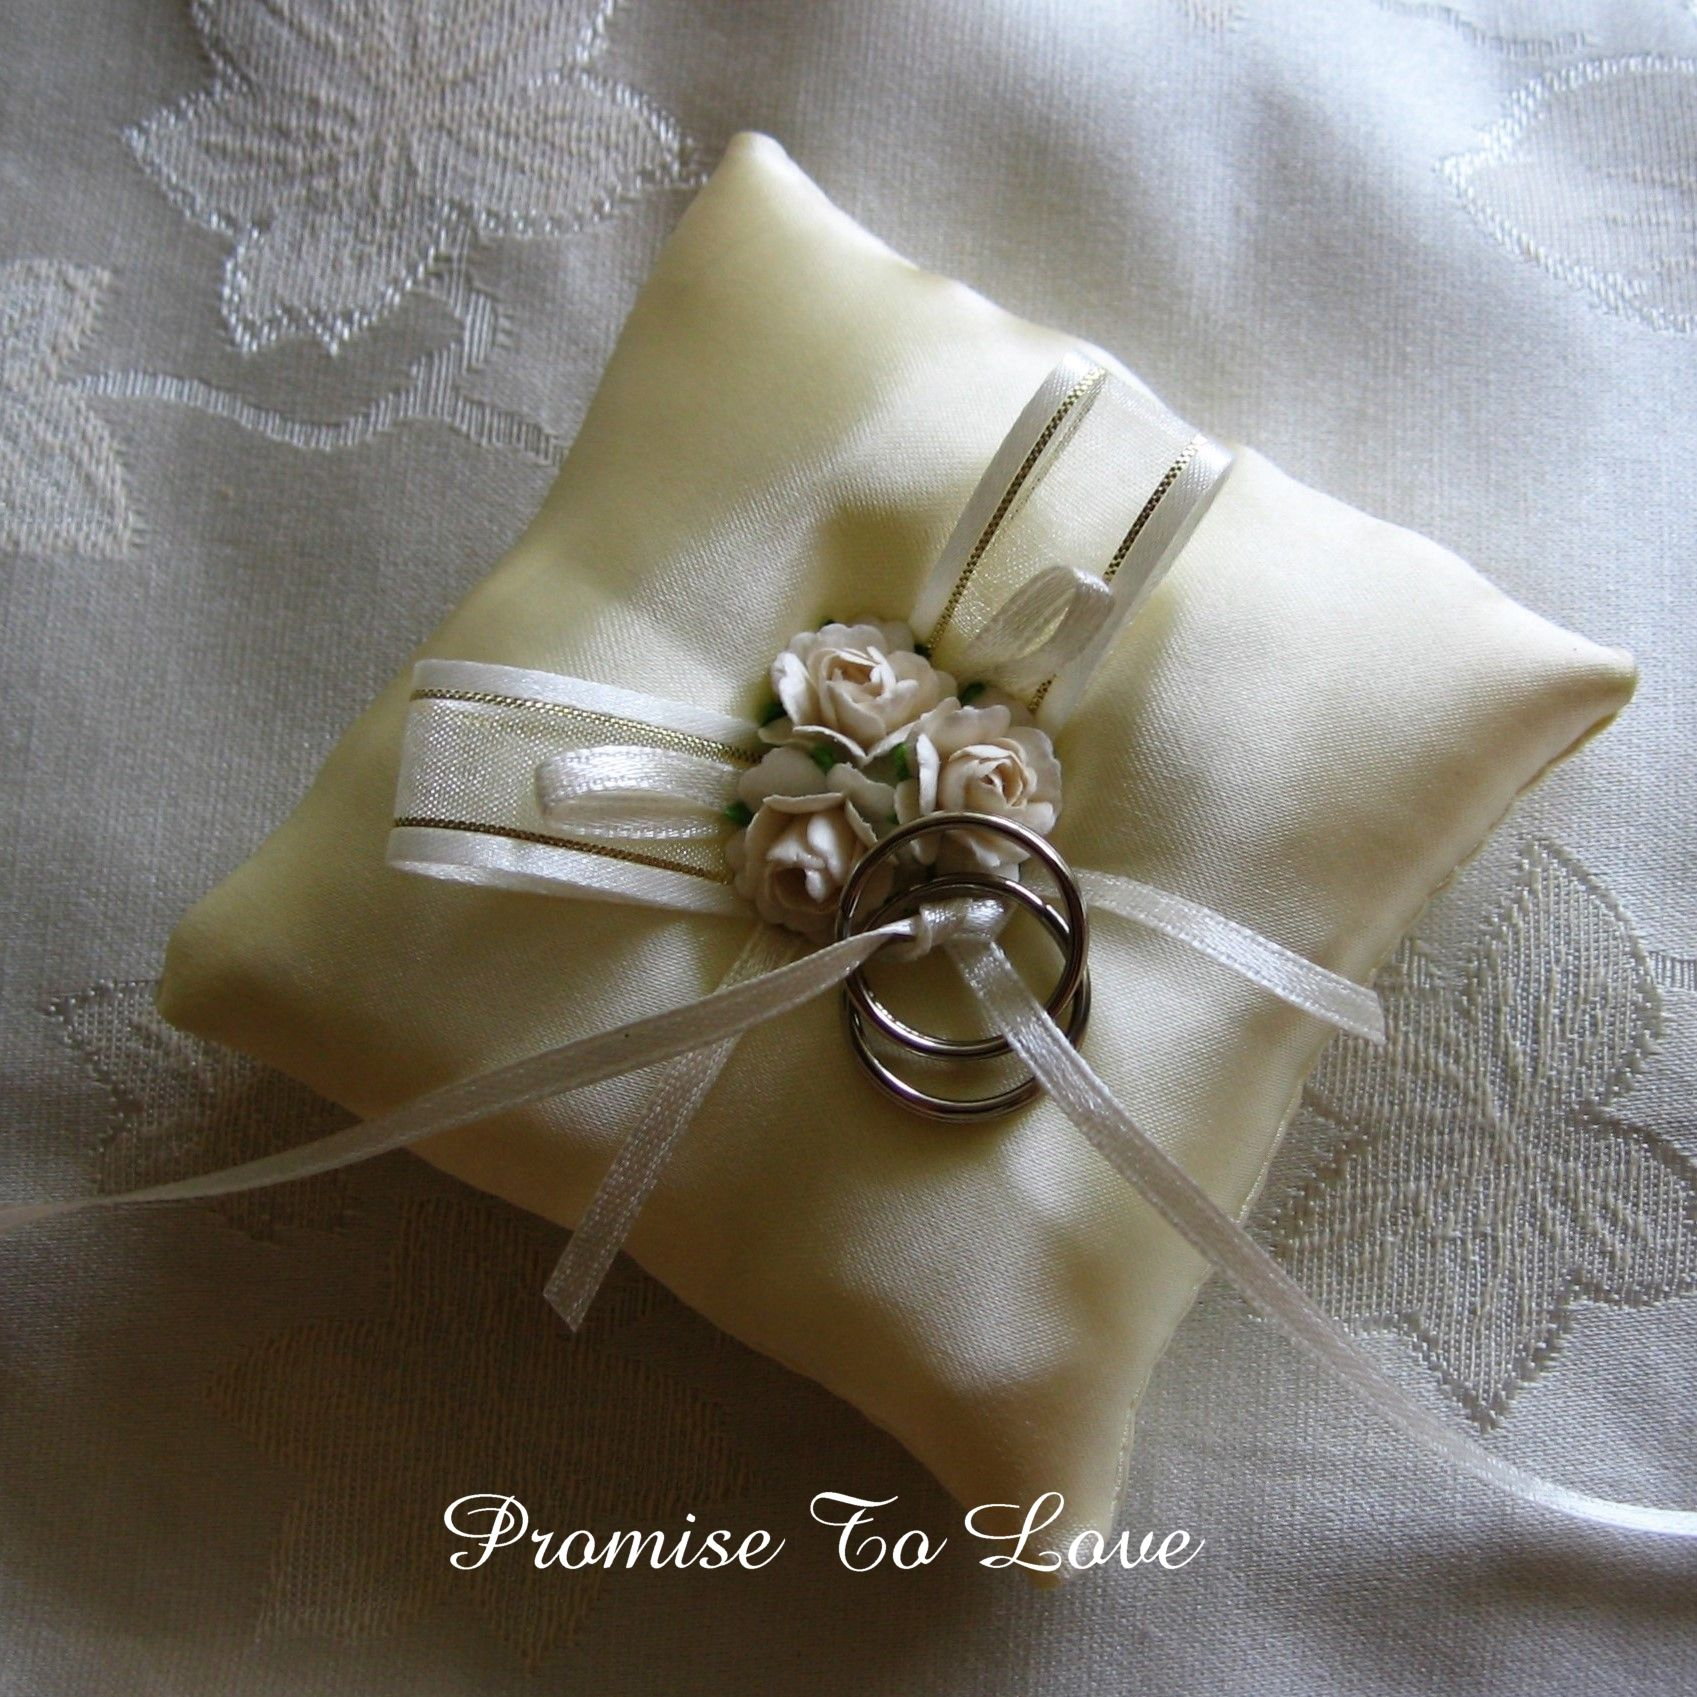 Buy Ivory Satin Ring Pillow (ROM/ Wedding) in SingaporeSingapore. Ivory Satin Ring Pillow (ROM/ Wedding) Brand New. Size of ring pillow: Get great deals on ... & Ivory Satin Ring Pillow (ROM/ Wedding) Brand New. Size of ring ... pillowsntoast.com